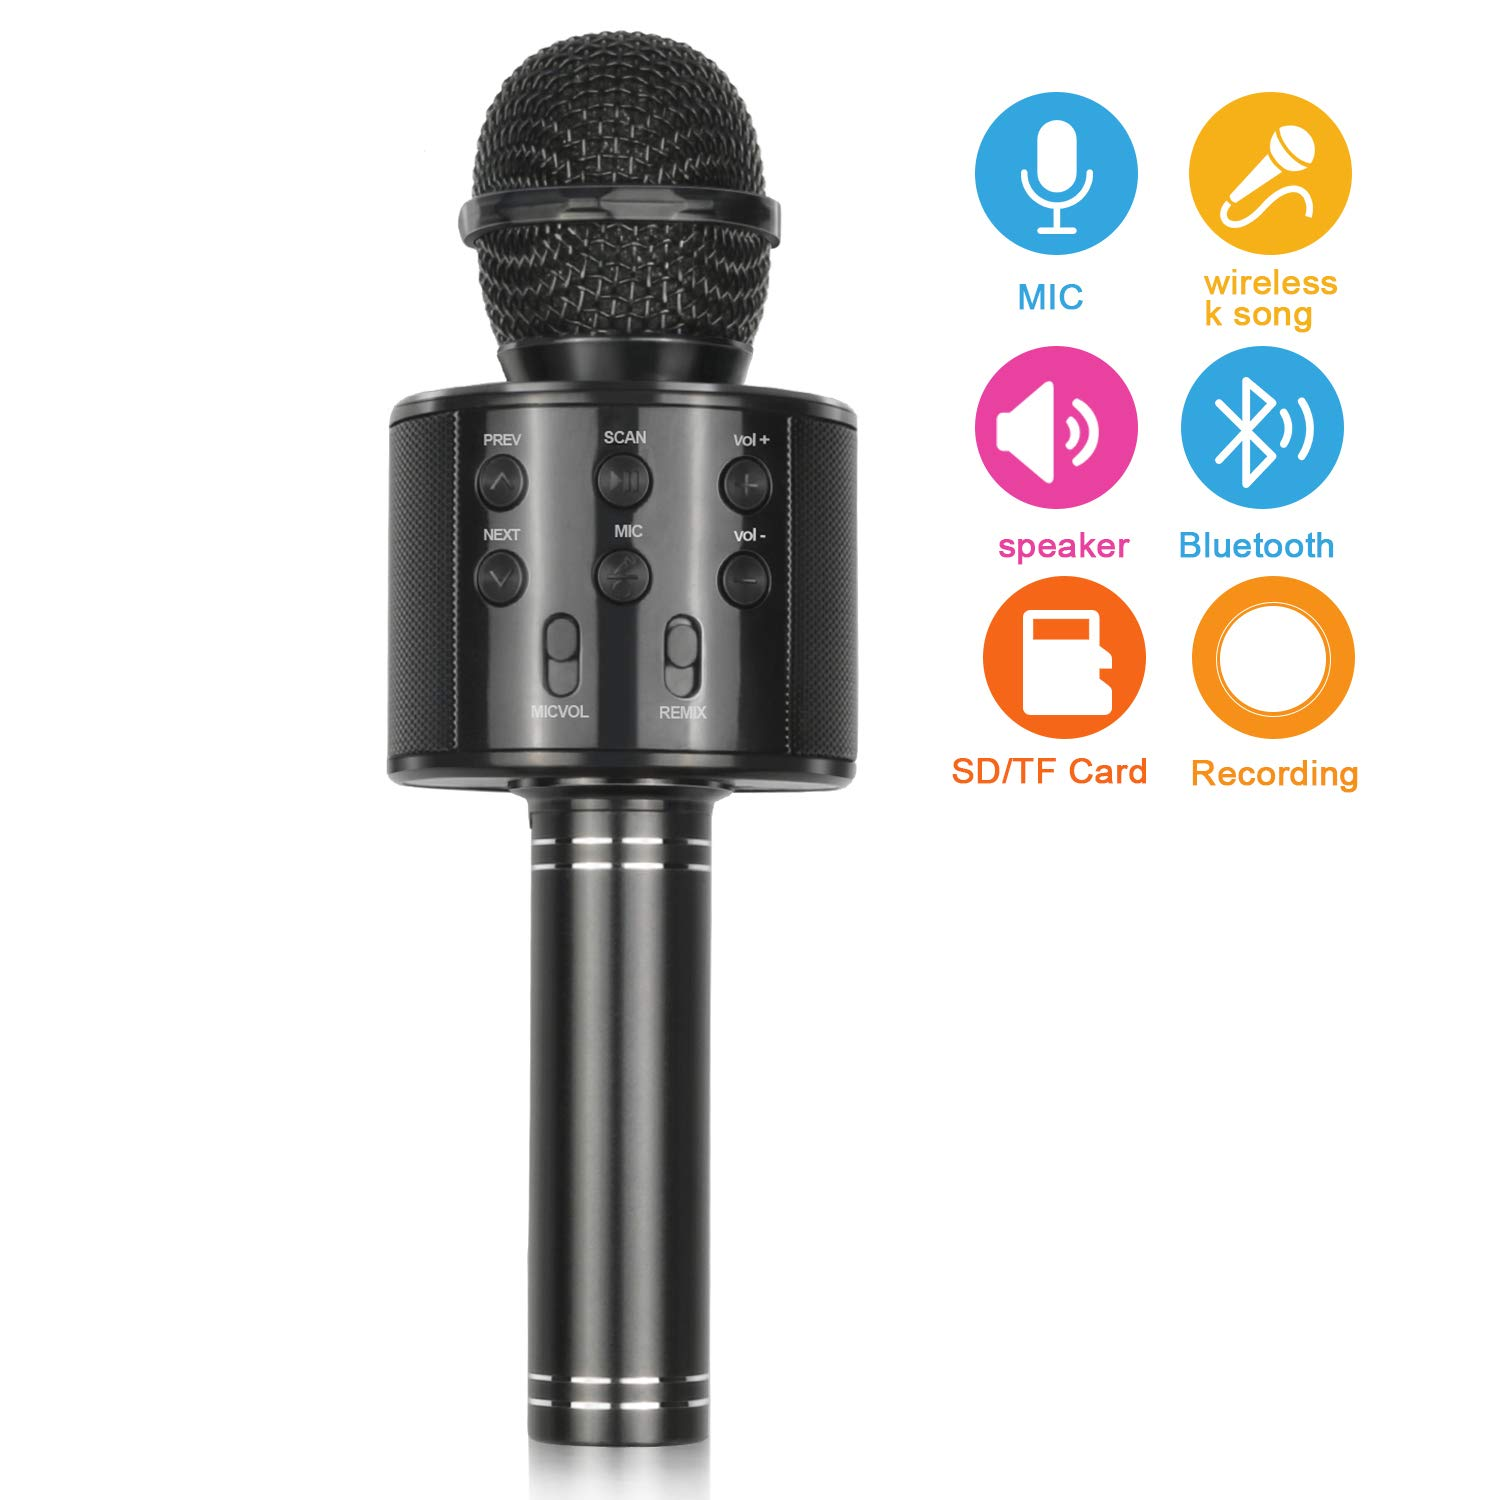 Popular Toys for 4-12 Year Old Girls, Touber Wireless Bluetooth Microphone for Kids Music Toy for 5-11 Year Old Kids Girl Party Gift Age 4-12 Girl